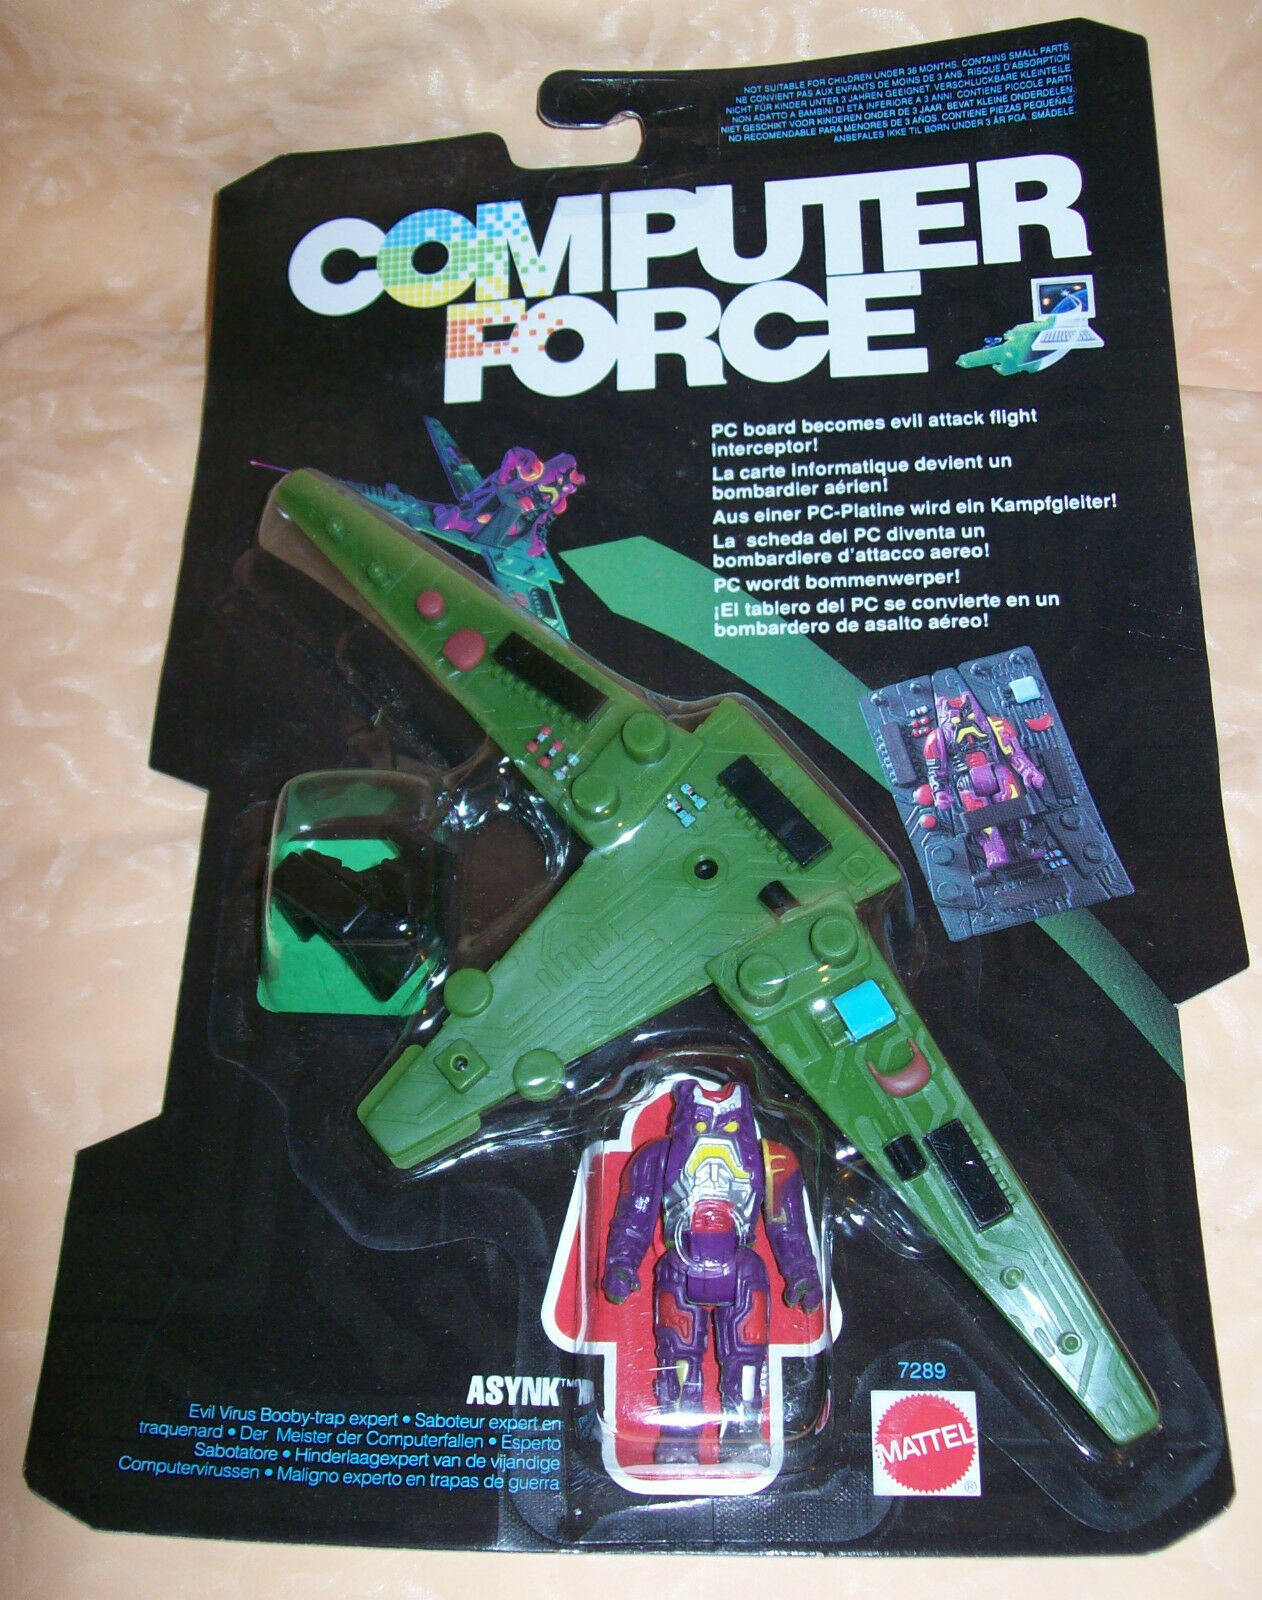 COMPUTER FORCE MATTEL ASYNK anno 1989  cod.5478